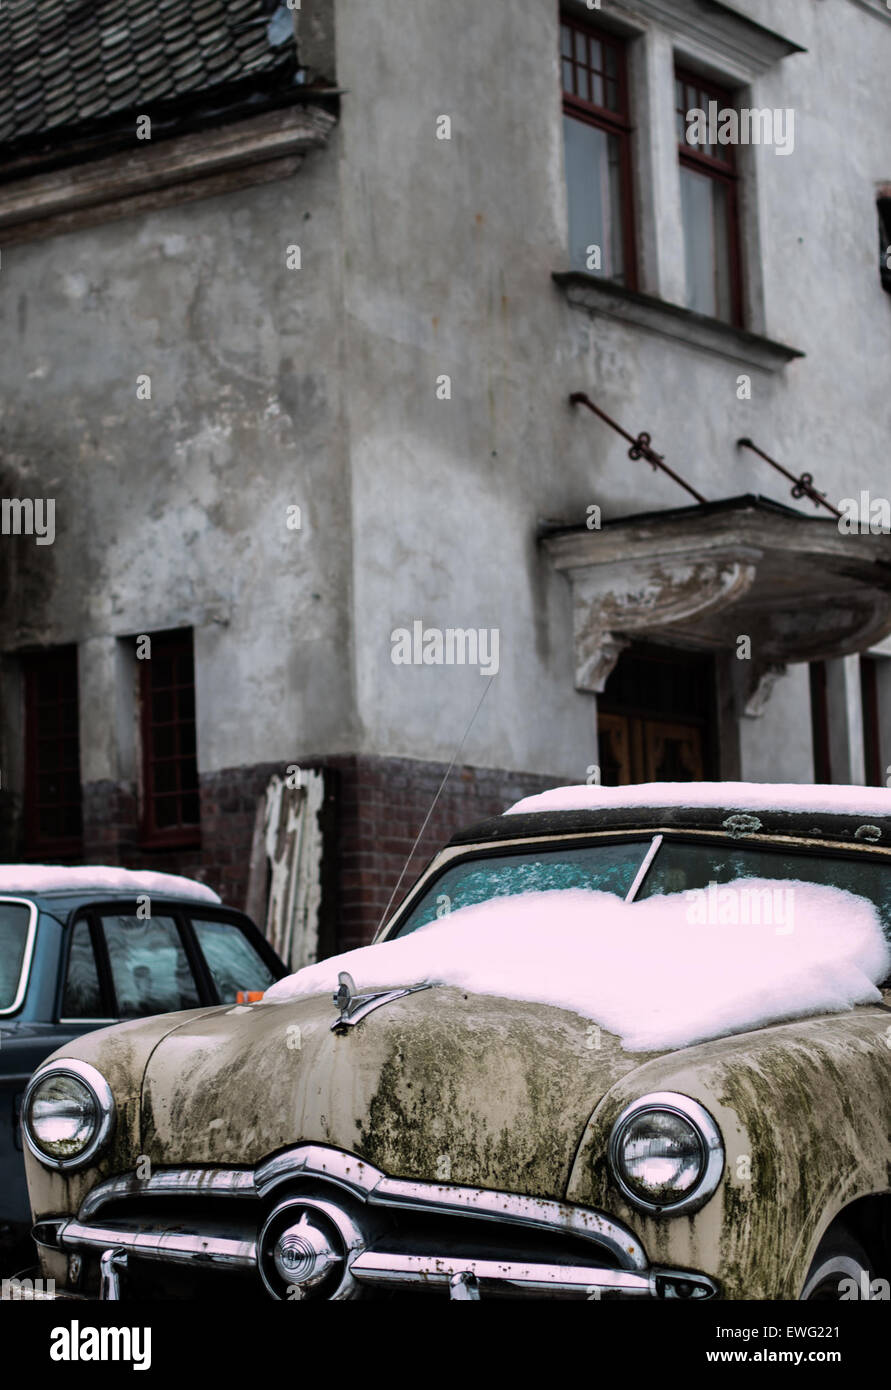 Vintage Car with Snow on Hood Antique Vintage Car automobile car snow vintage - Stock Image